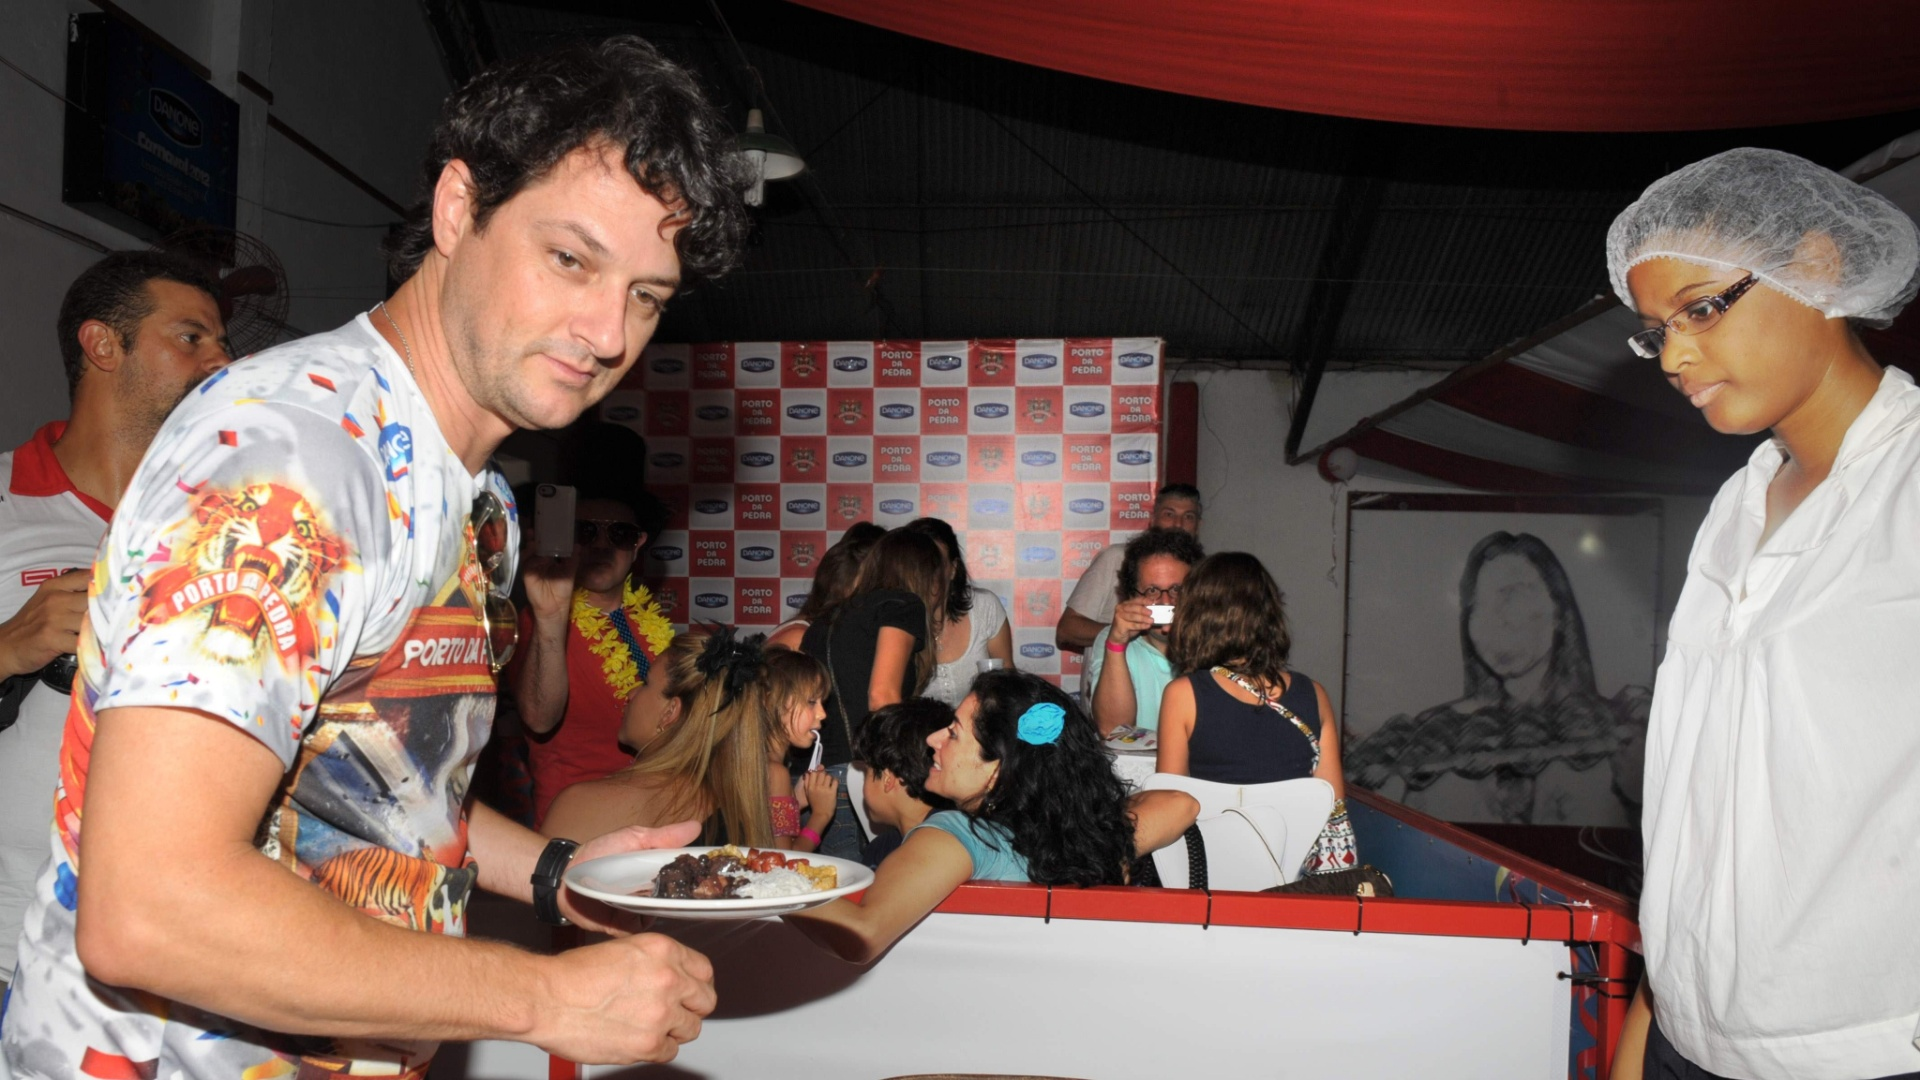 Marcelo Serrado vai a feijoada na quadra da Porto da Pedra (2012)